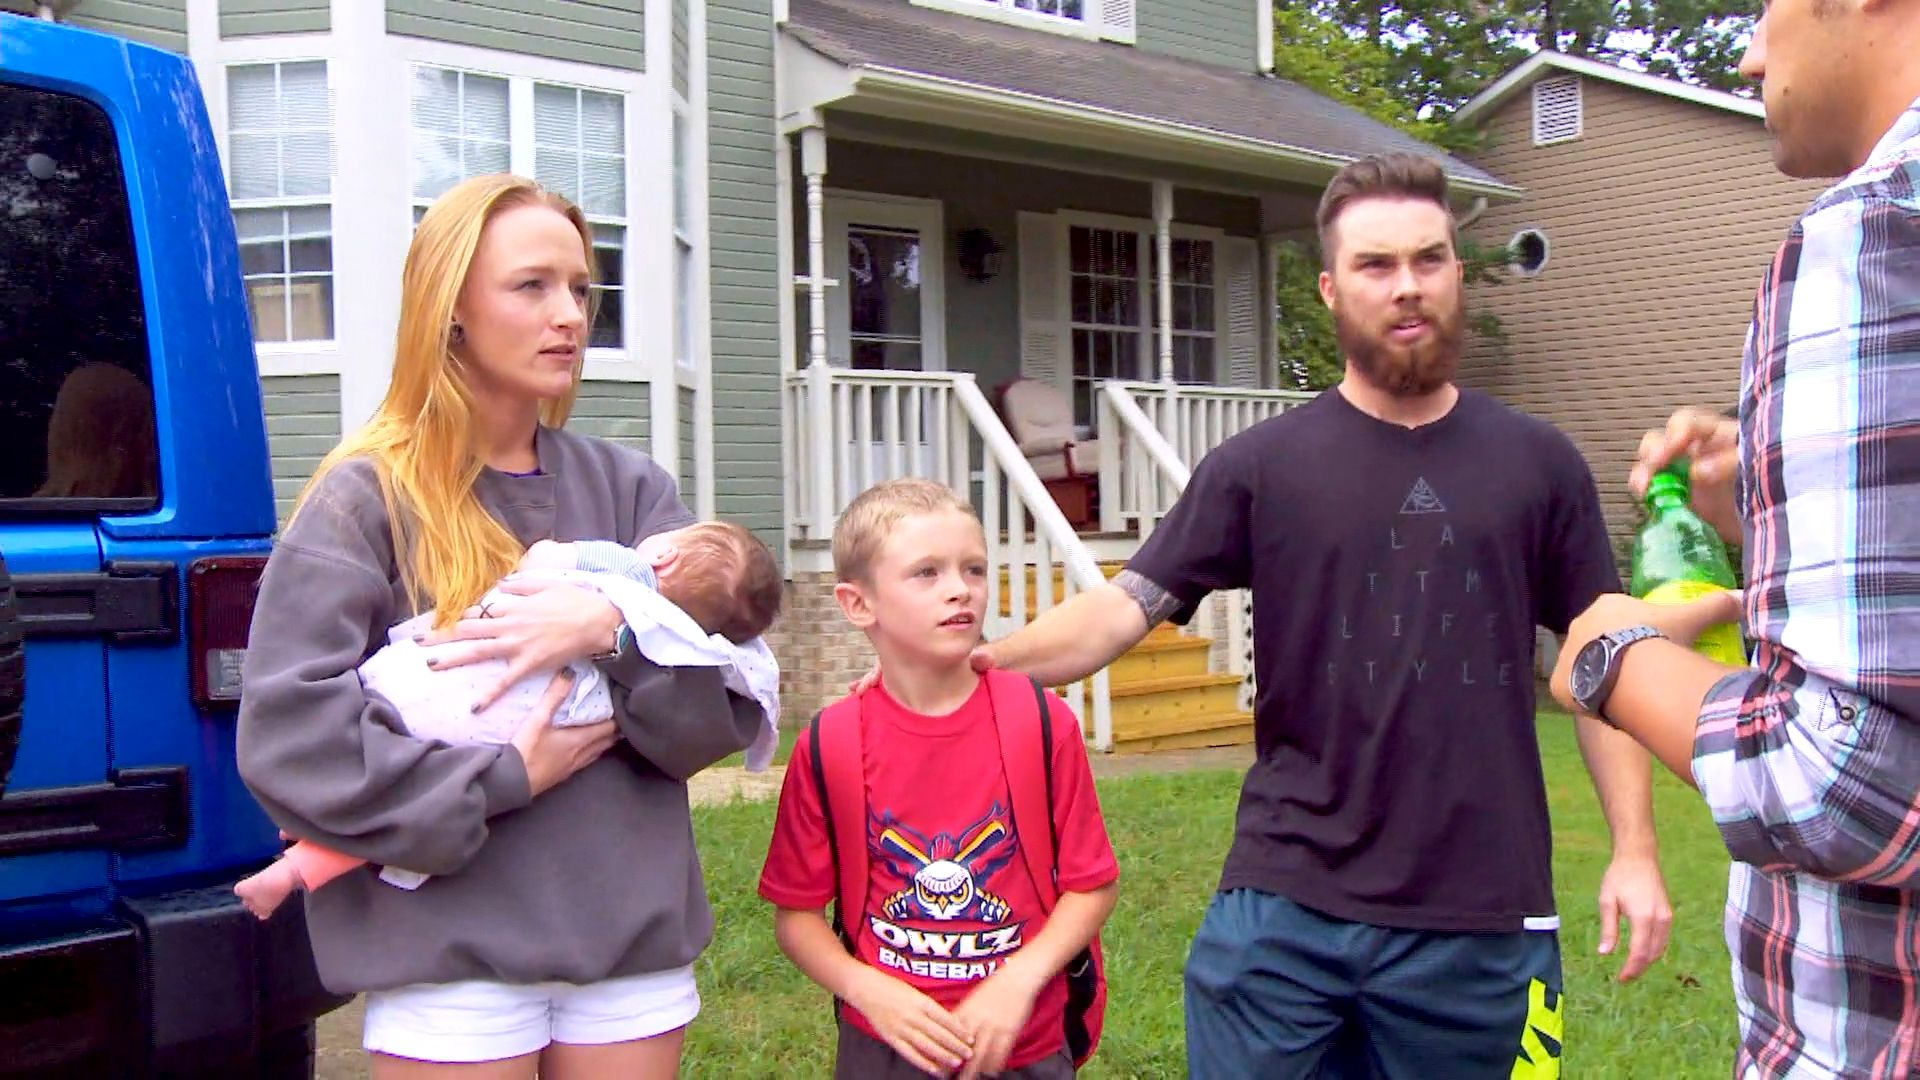 teen news amber portwood farrah abraham fight over paedophile comments uncut finale special